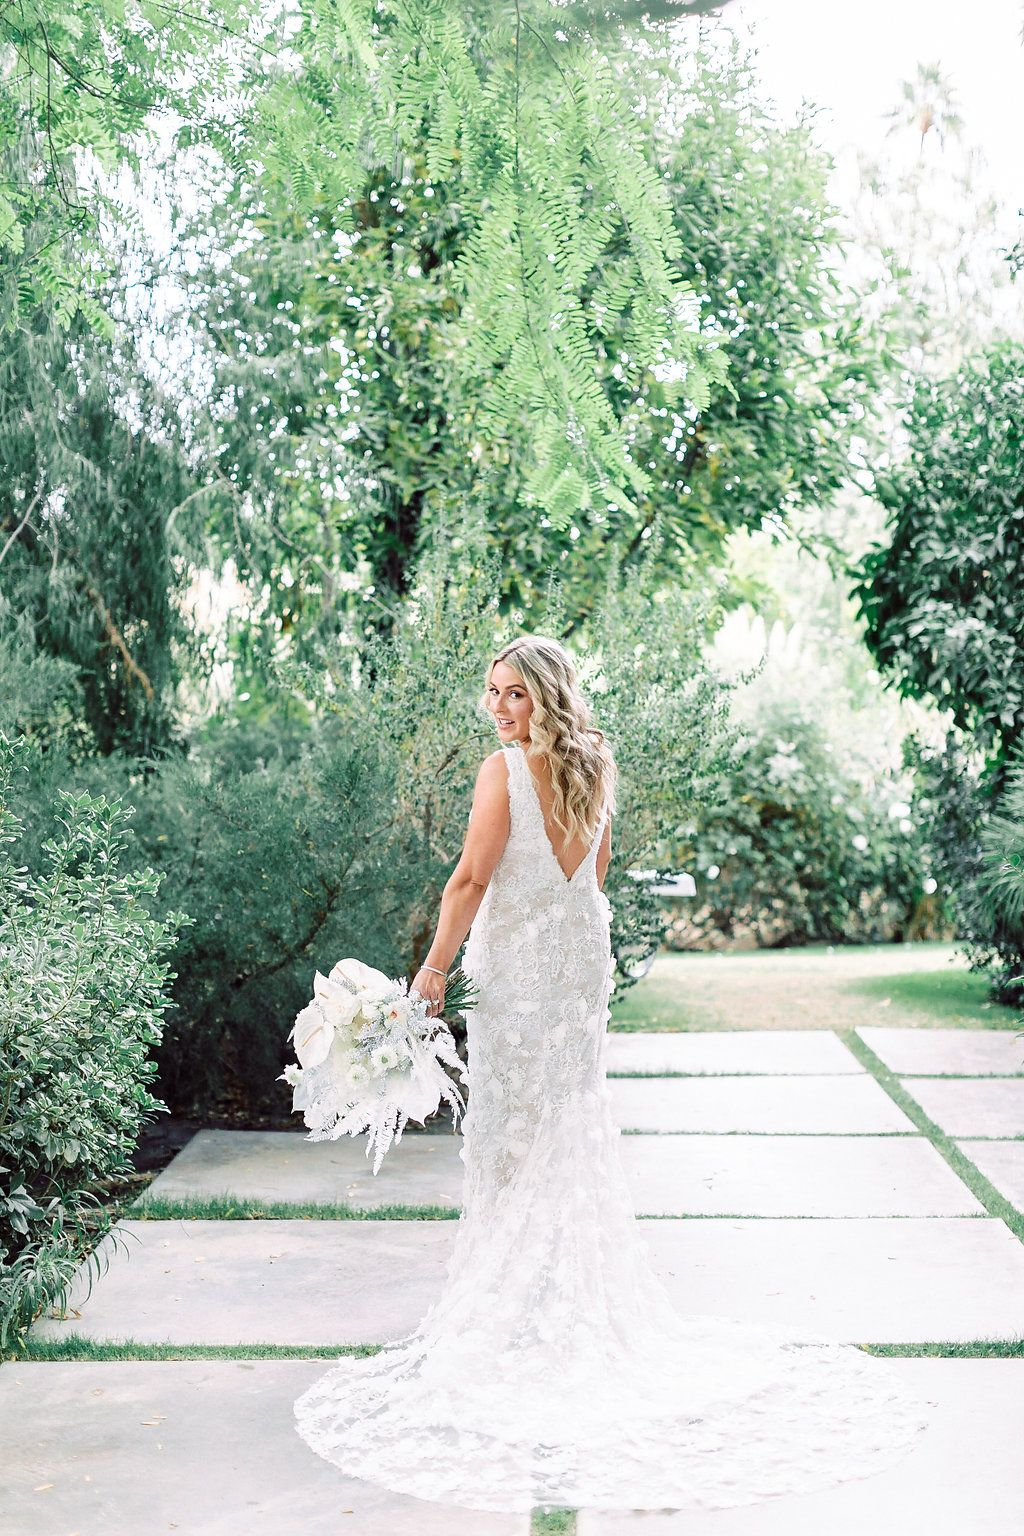 Do you want to see more weddings check out my blog for more inspo